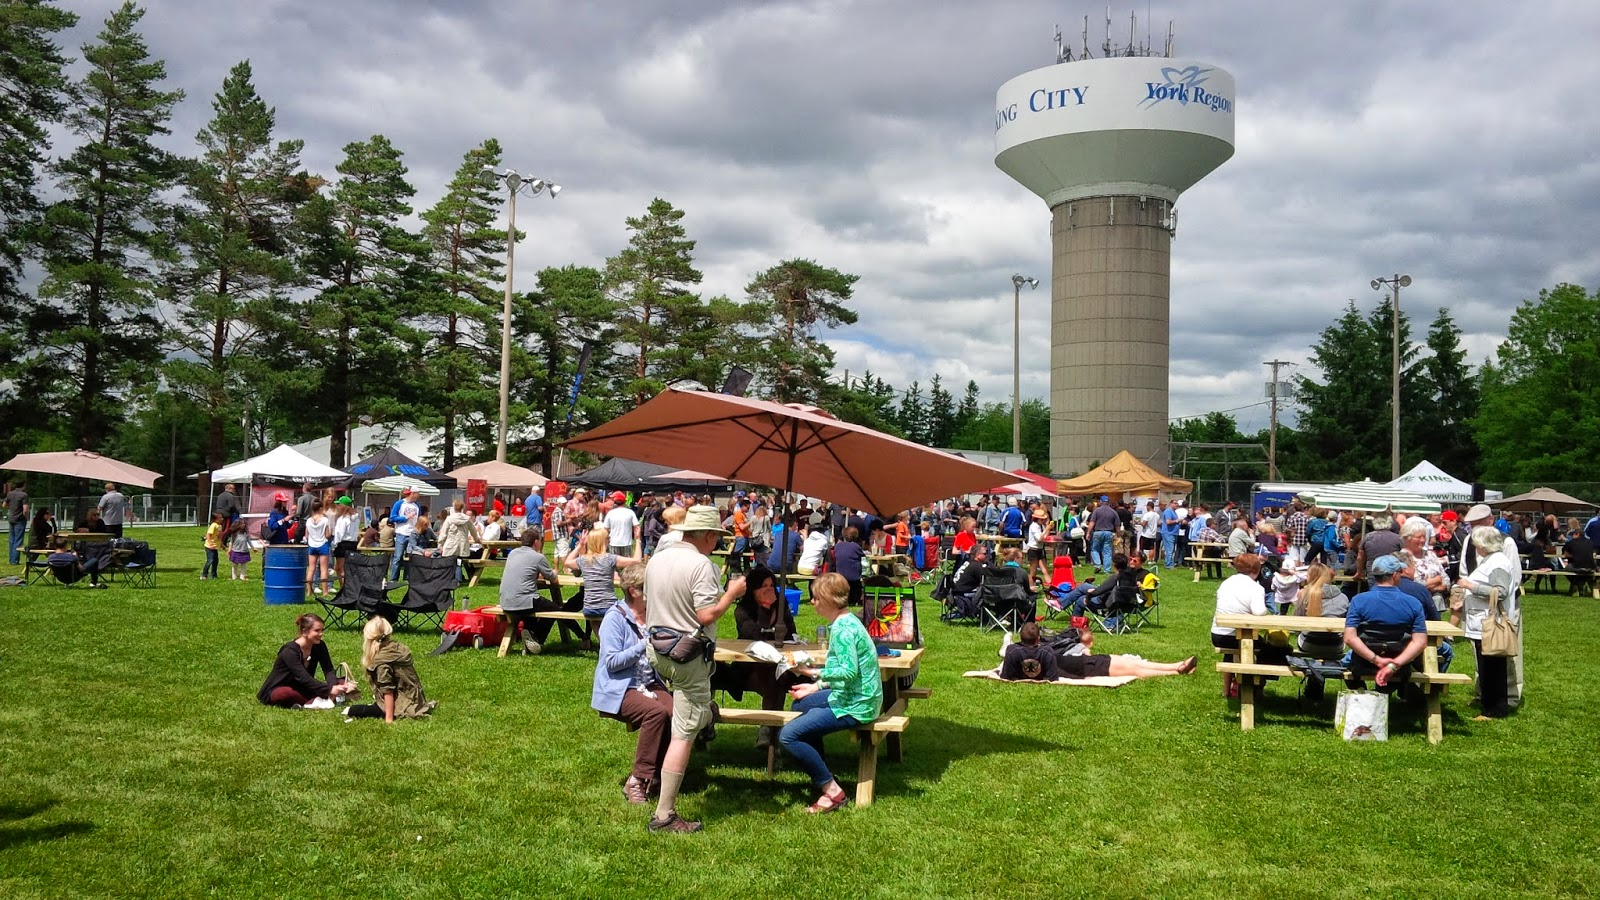 King city craft beer and food truck festival recap real for Food truck and craft beer festival